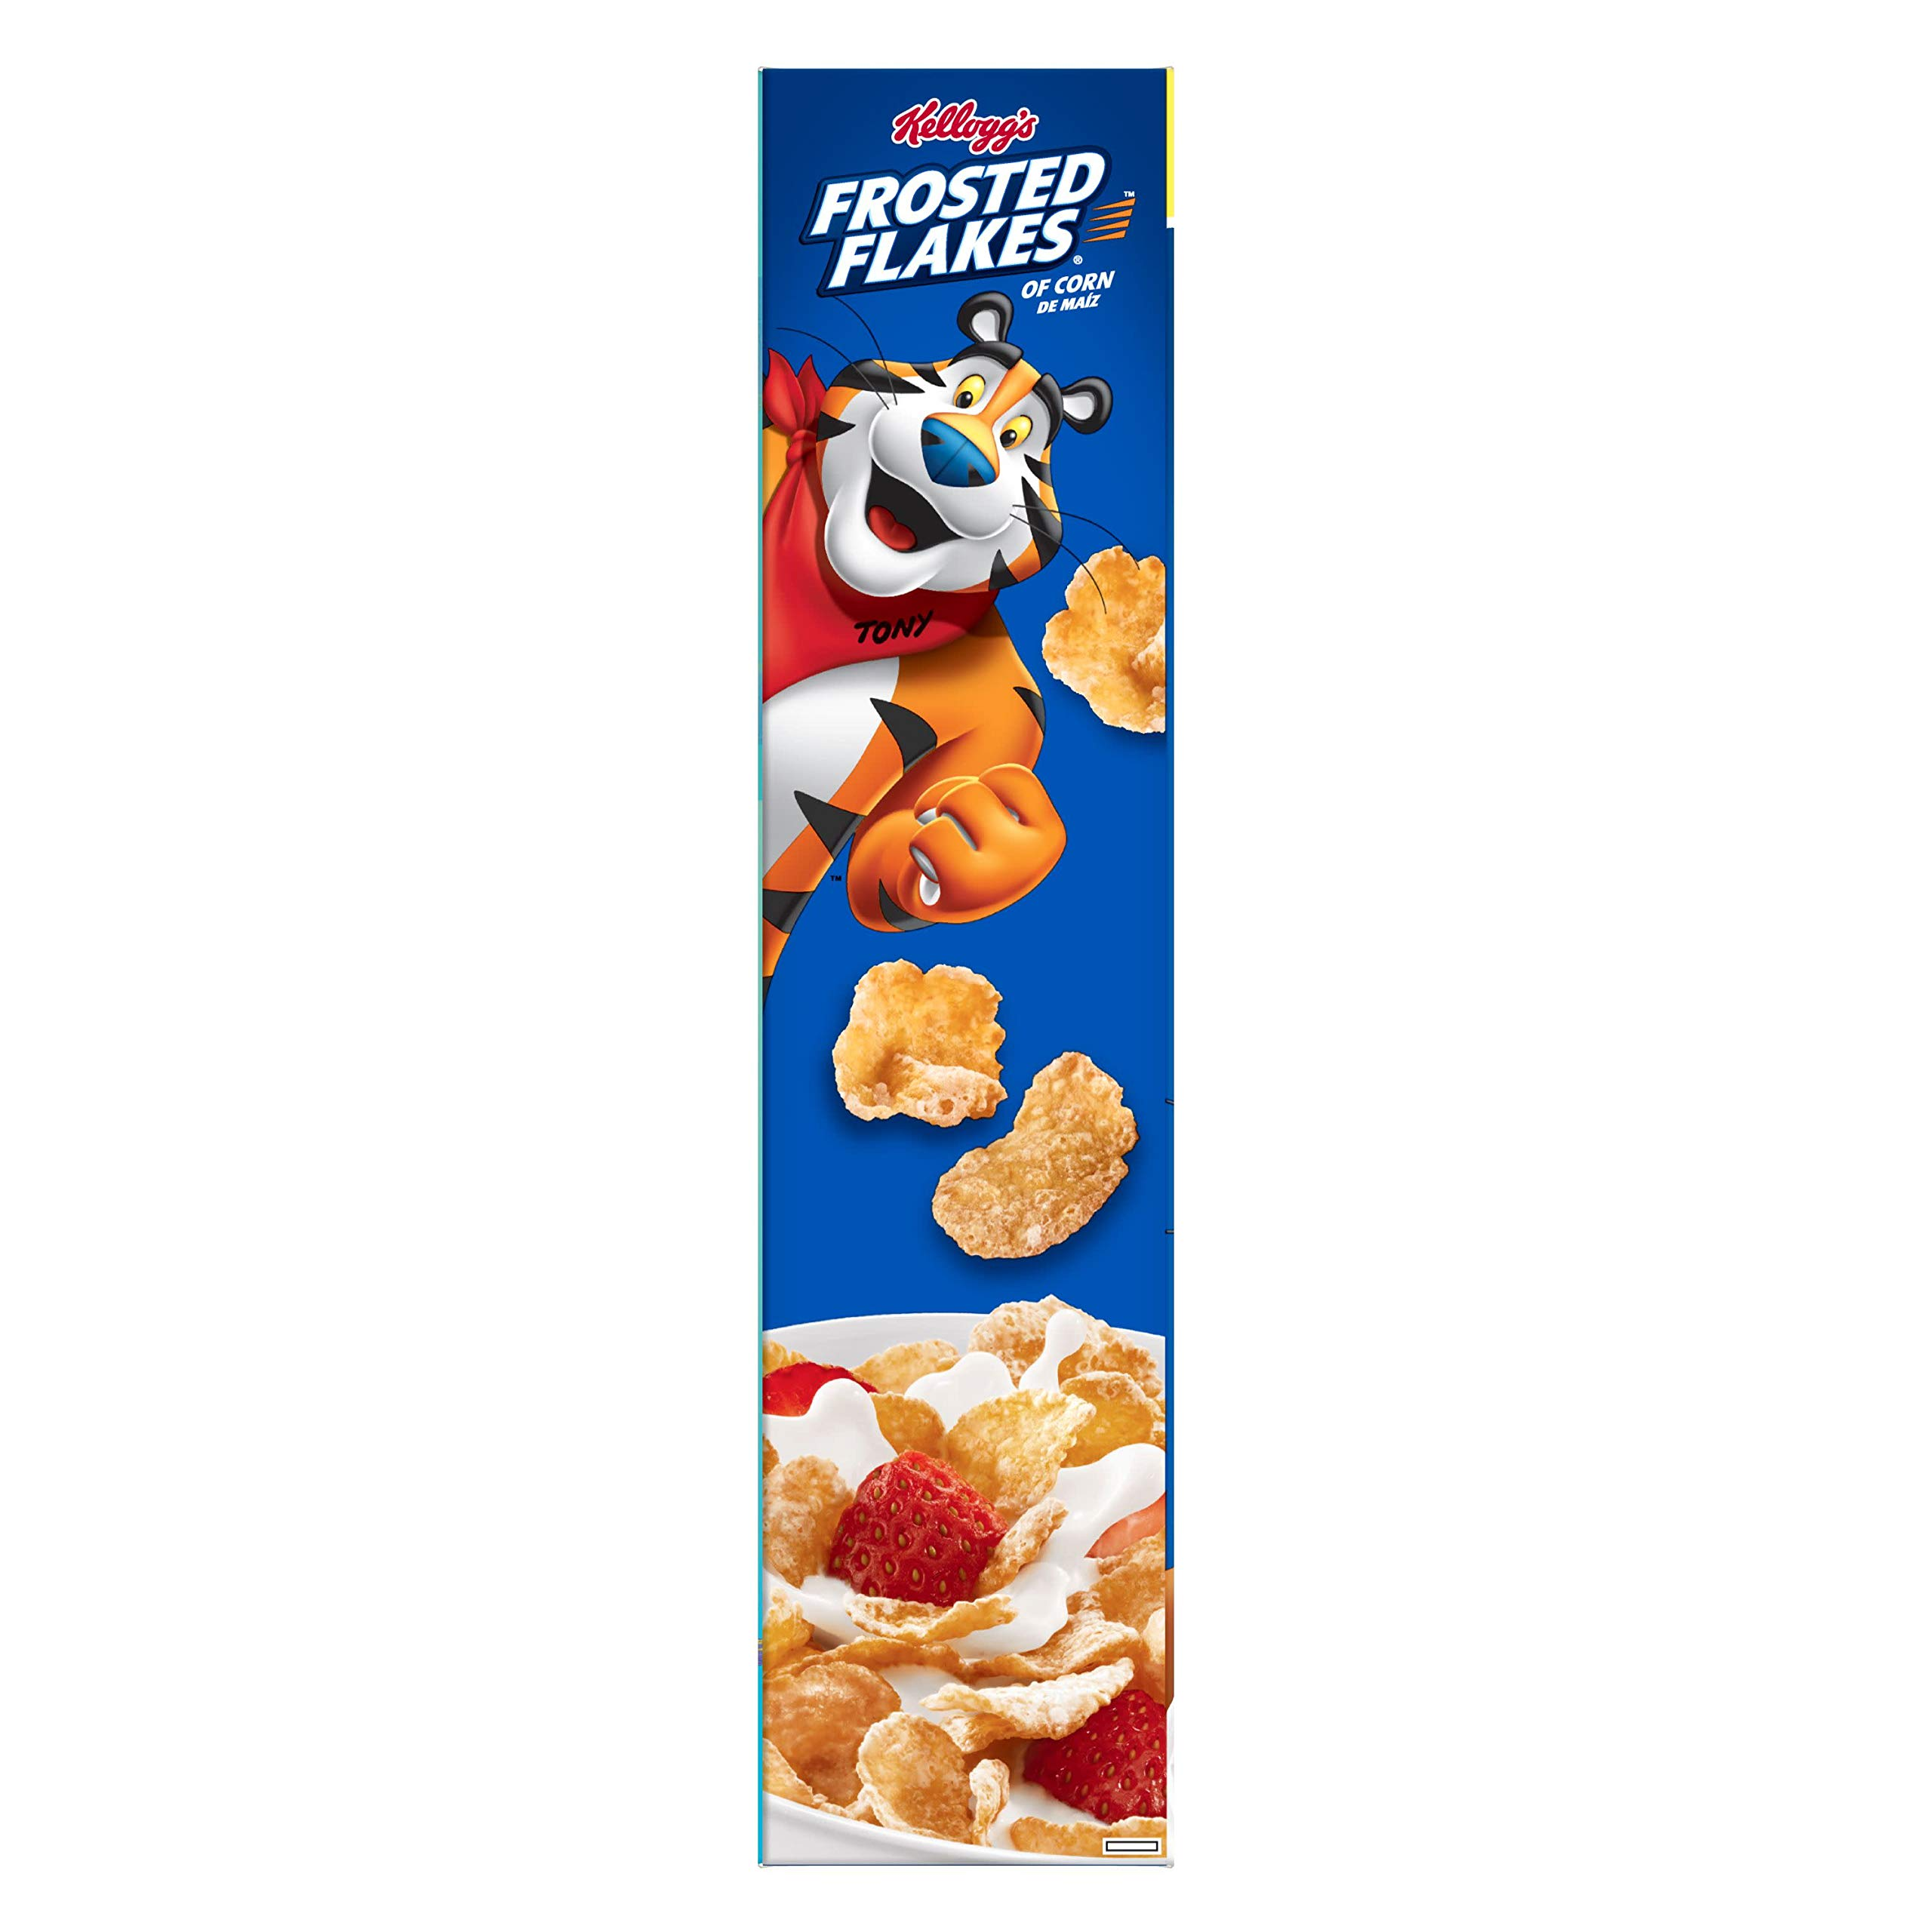 Kellogg's Frosted Flakes, Breakfast Cereal, Fat-Free, Family Size, 24 oz by Kellogg's (Image #9)